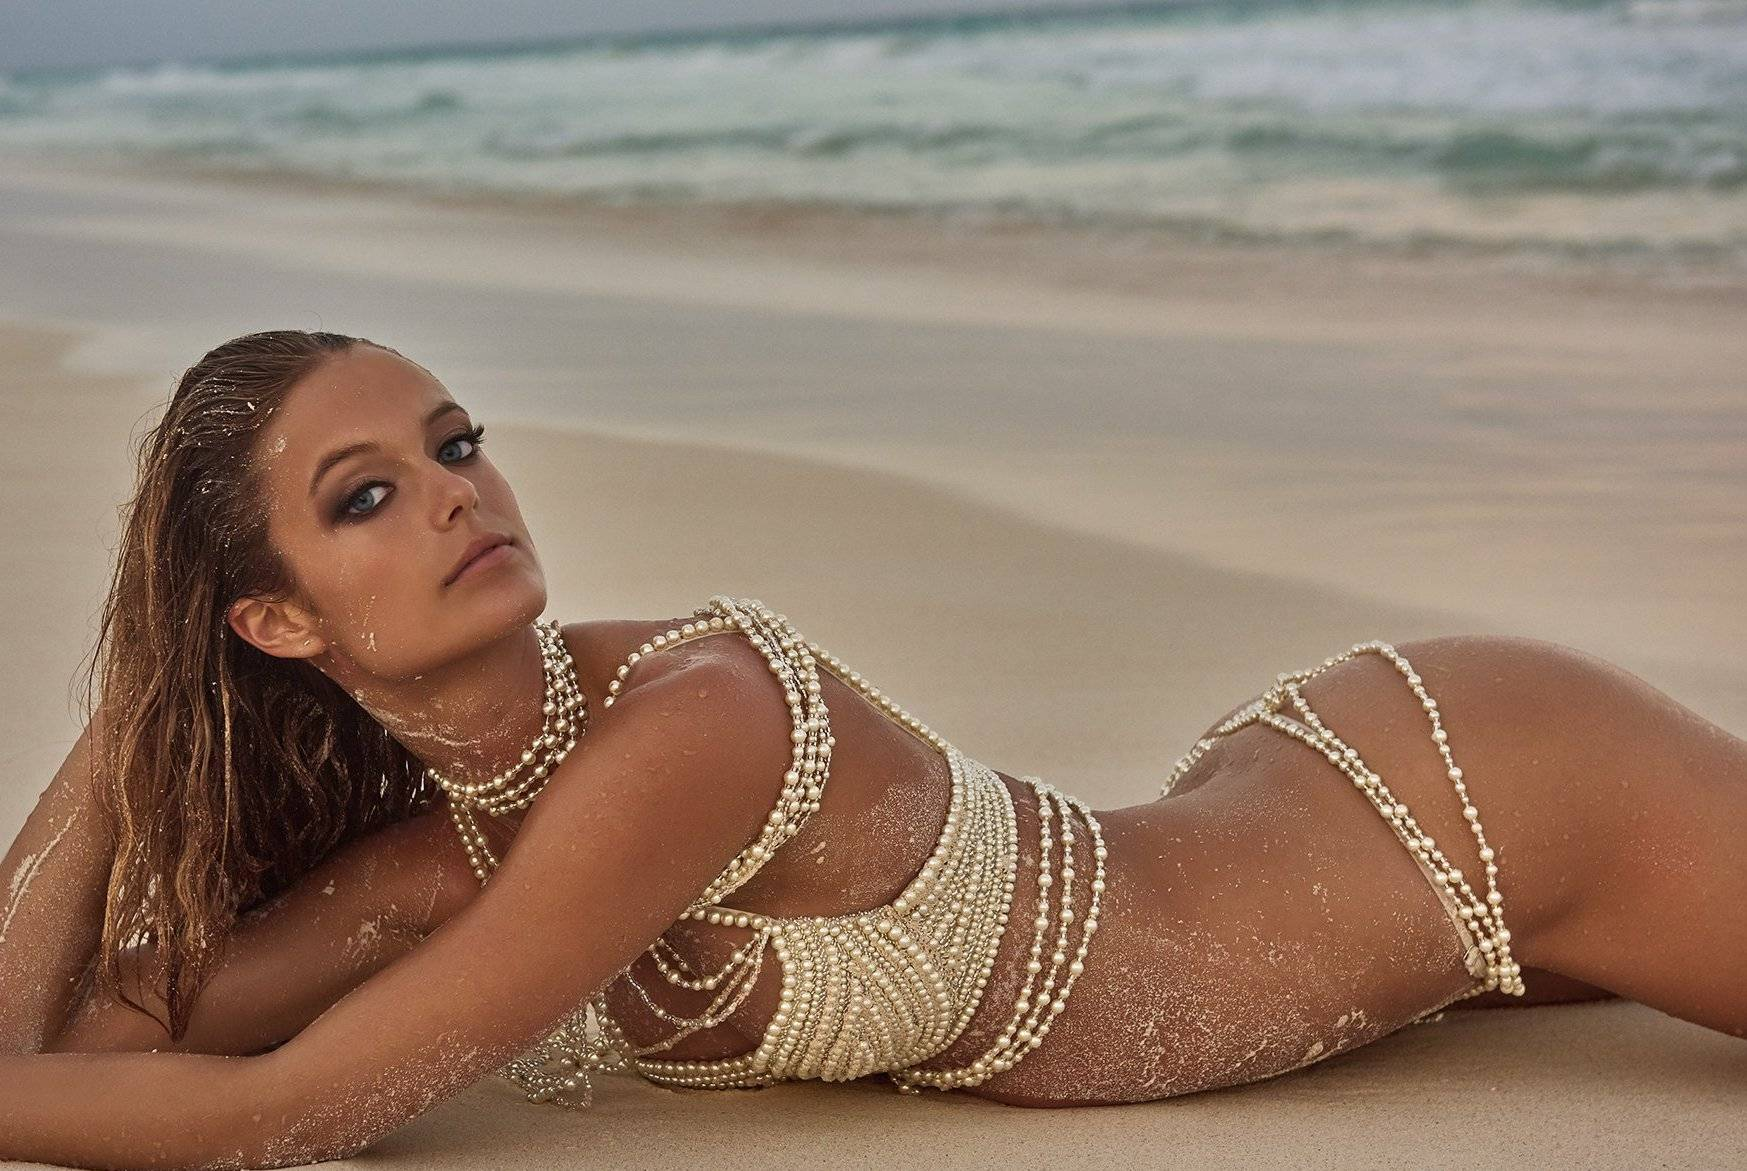 Kate Bock by Ruven Afanador in Mexico for Sports ...